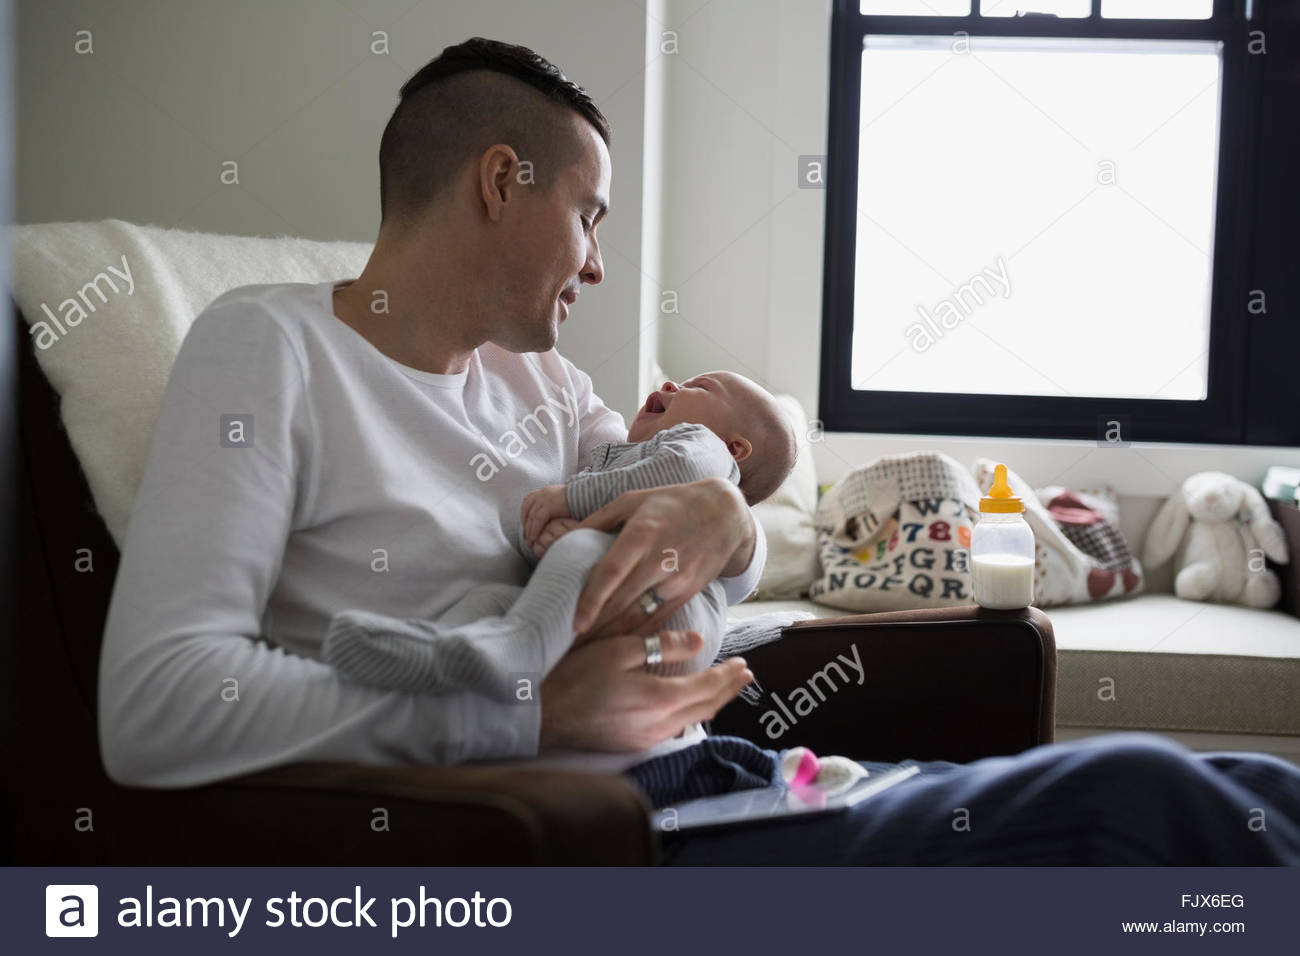 Father holding baby son in nursery - Stock Image